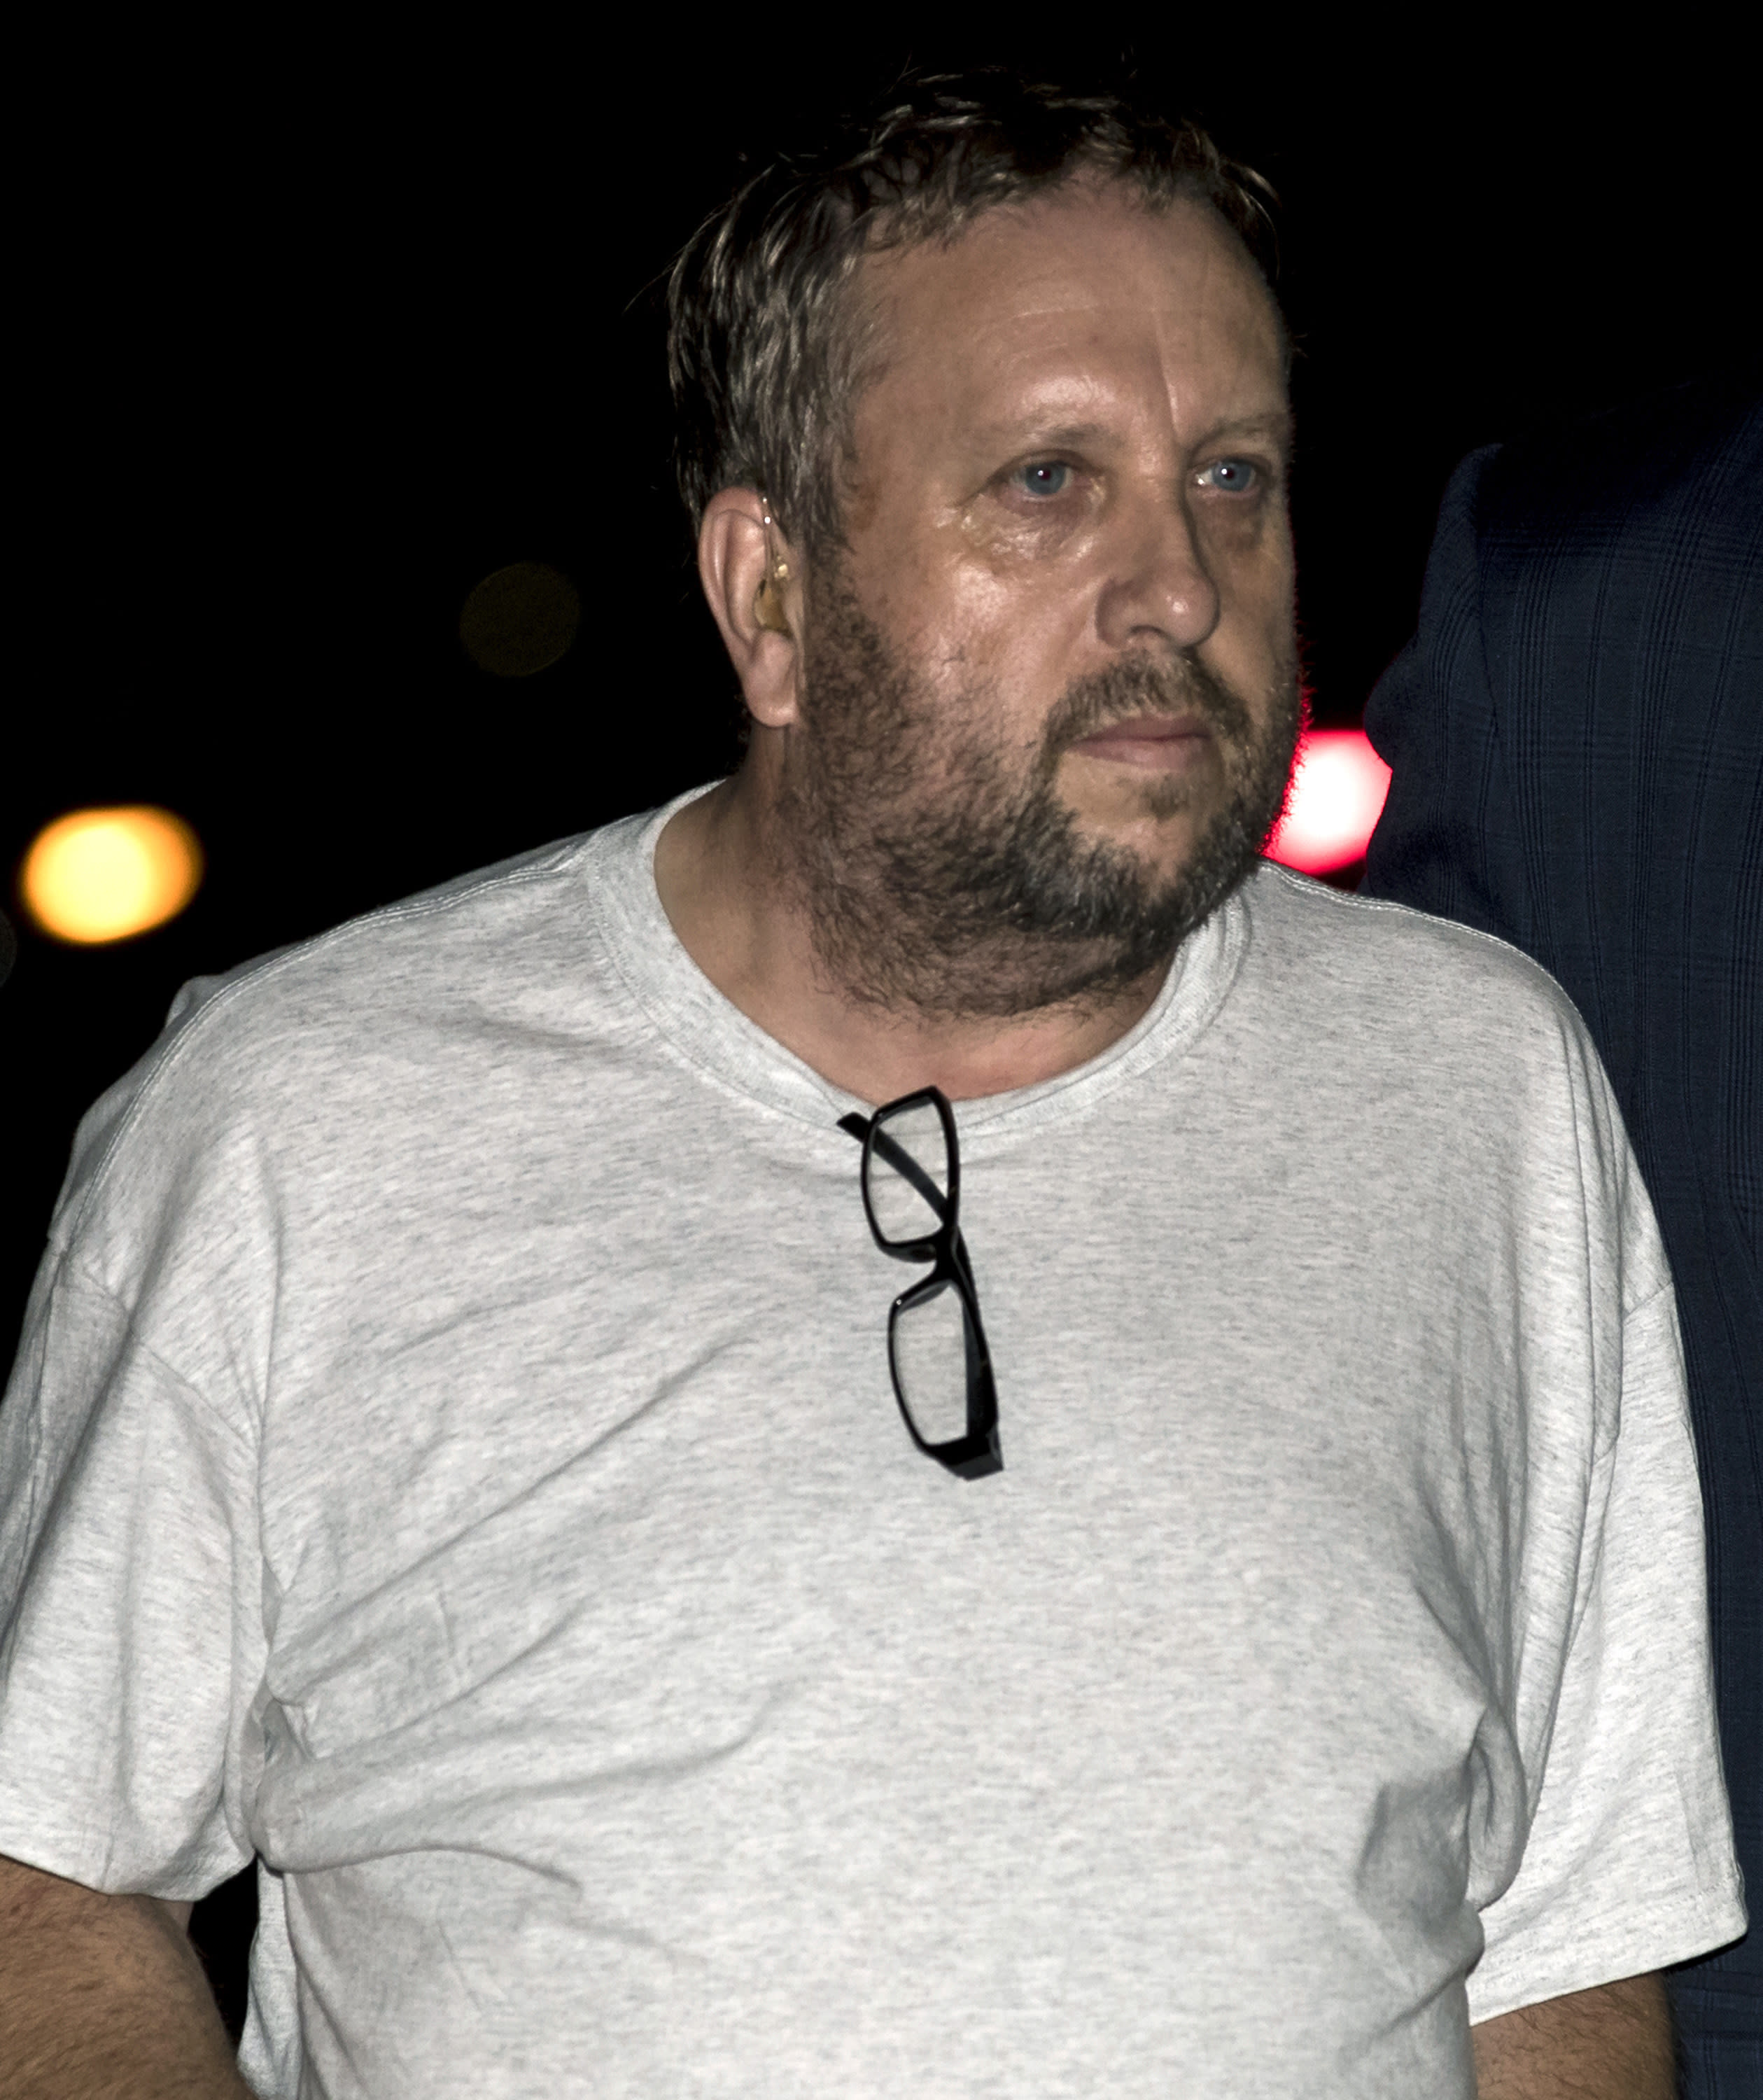 FILE - In this Aug. 18, 2017 file photo, Andrew Warren arrives at a police station as he is escorted by Chicago police, in Chicago. Andrew Warren, a British man accused in the fatal stabbing of a hair stylist in Chicago, agreed Monday, July 22, 2019 to plead guilty and testify against his co-defendant, Wyndham Lathem, in the killing of a former Northwestern University professor in exchange for a 45-year-prison sentence. (AP Photo/Jim Young, Pool, File)